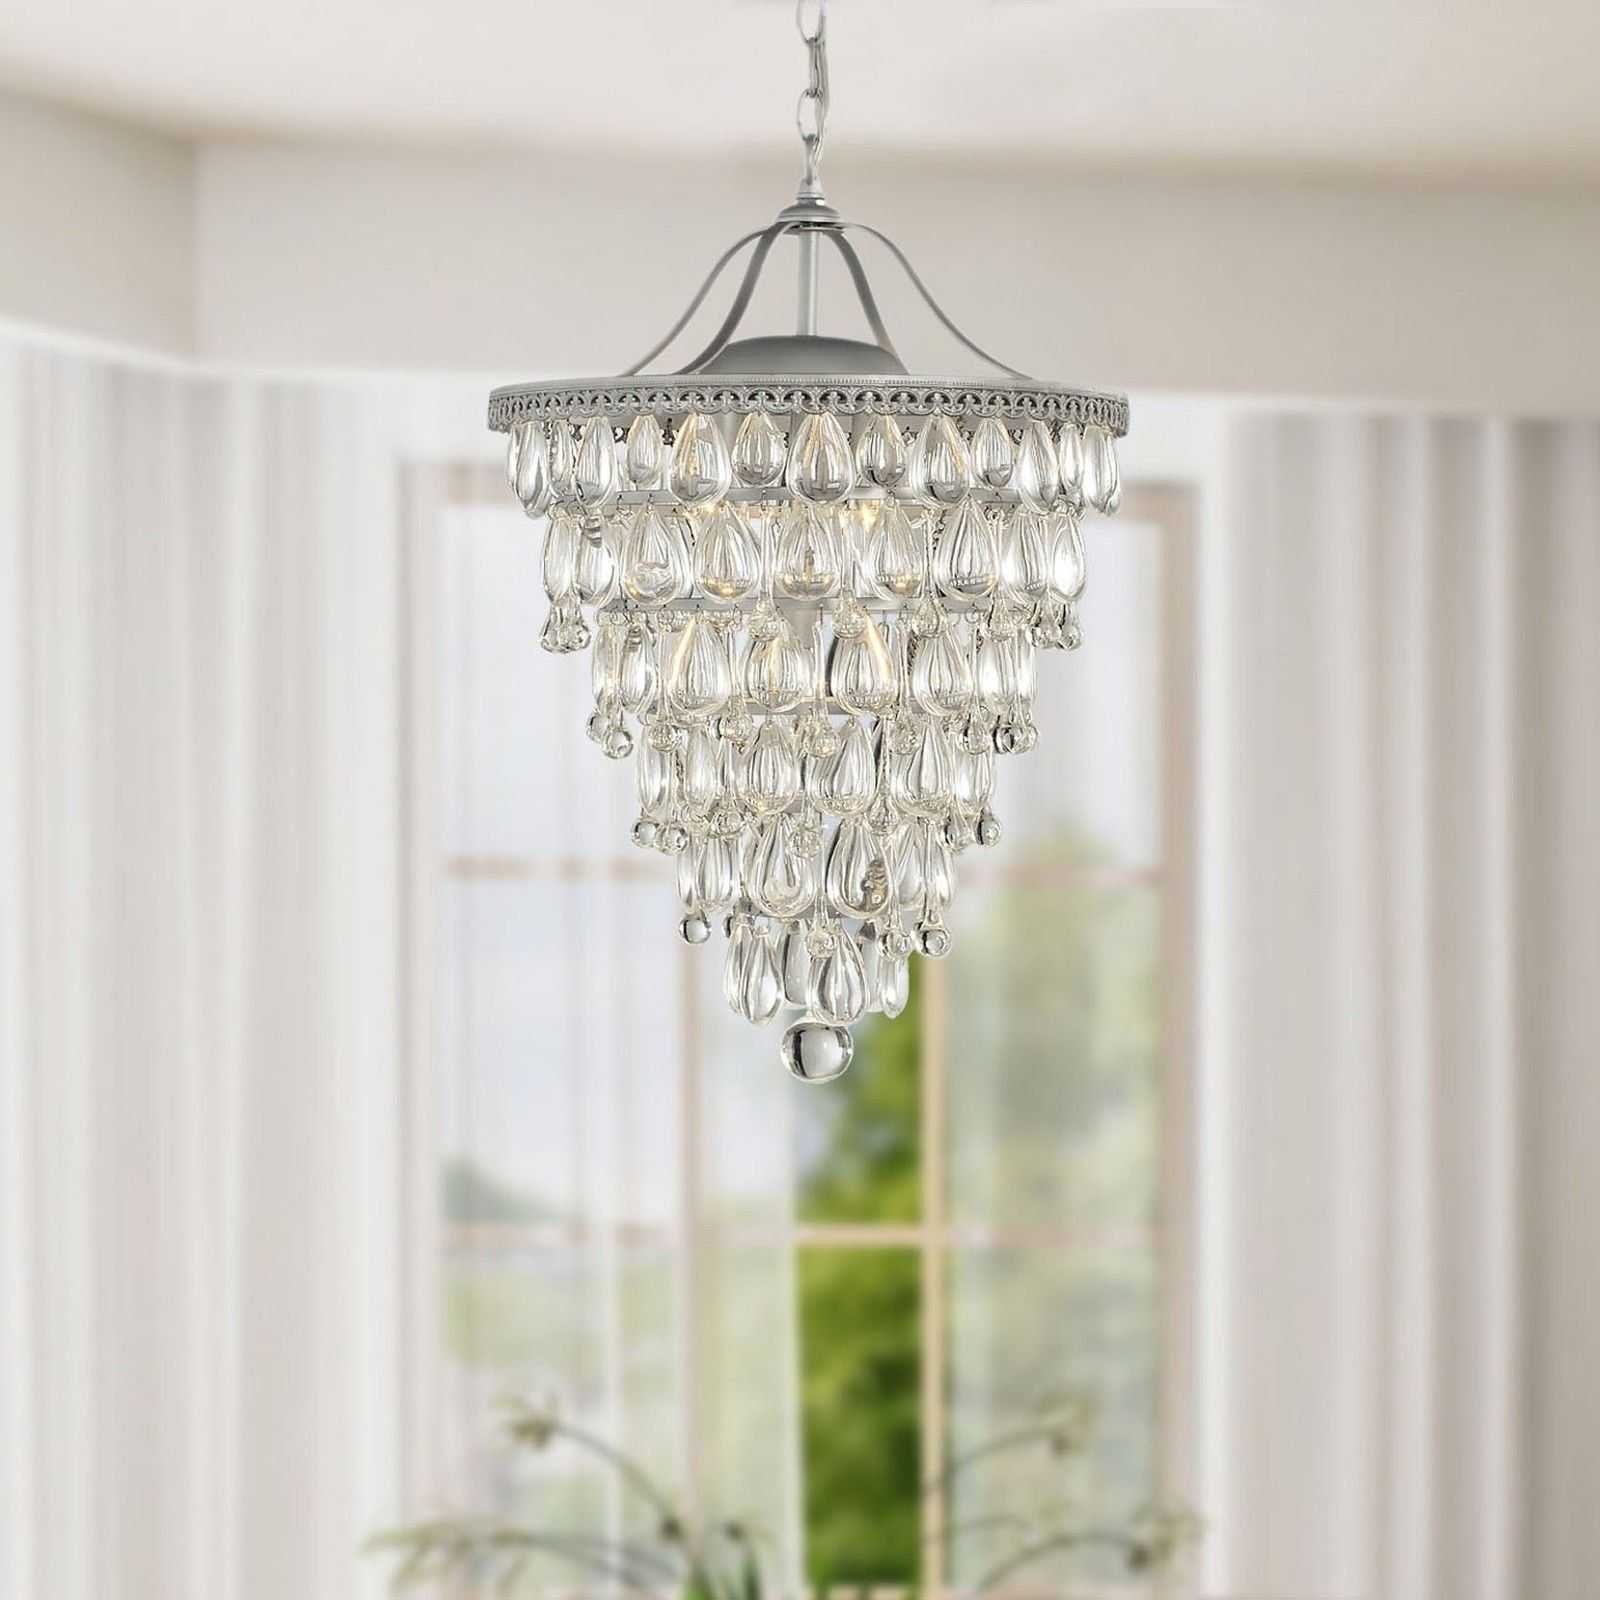 Siam circus cone shape light matte silver crystal chandelier